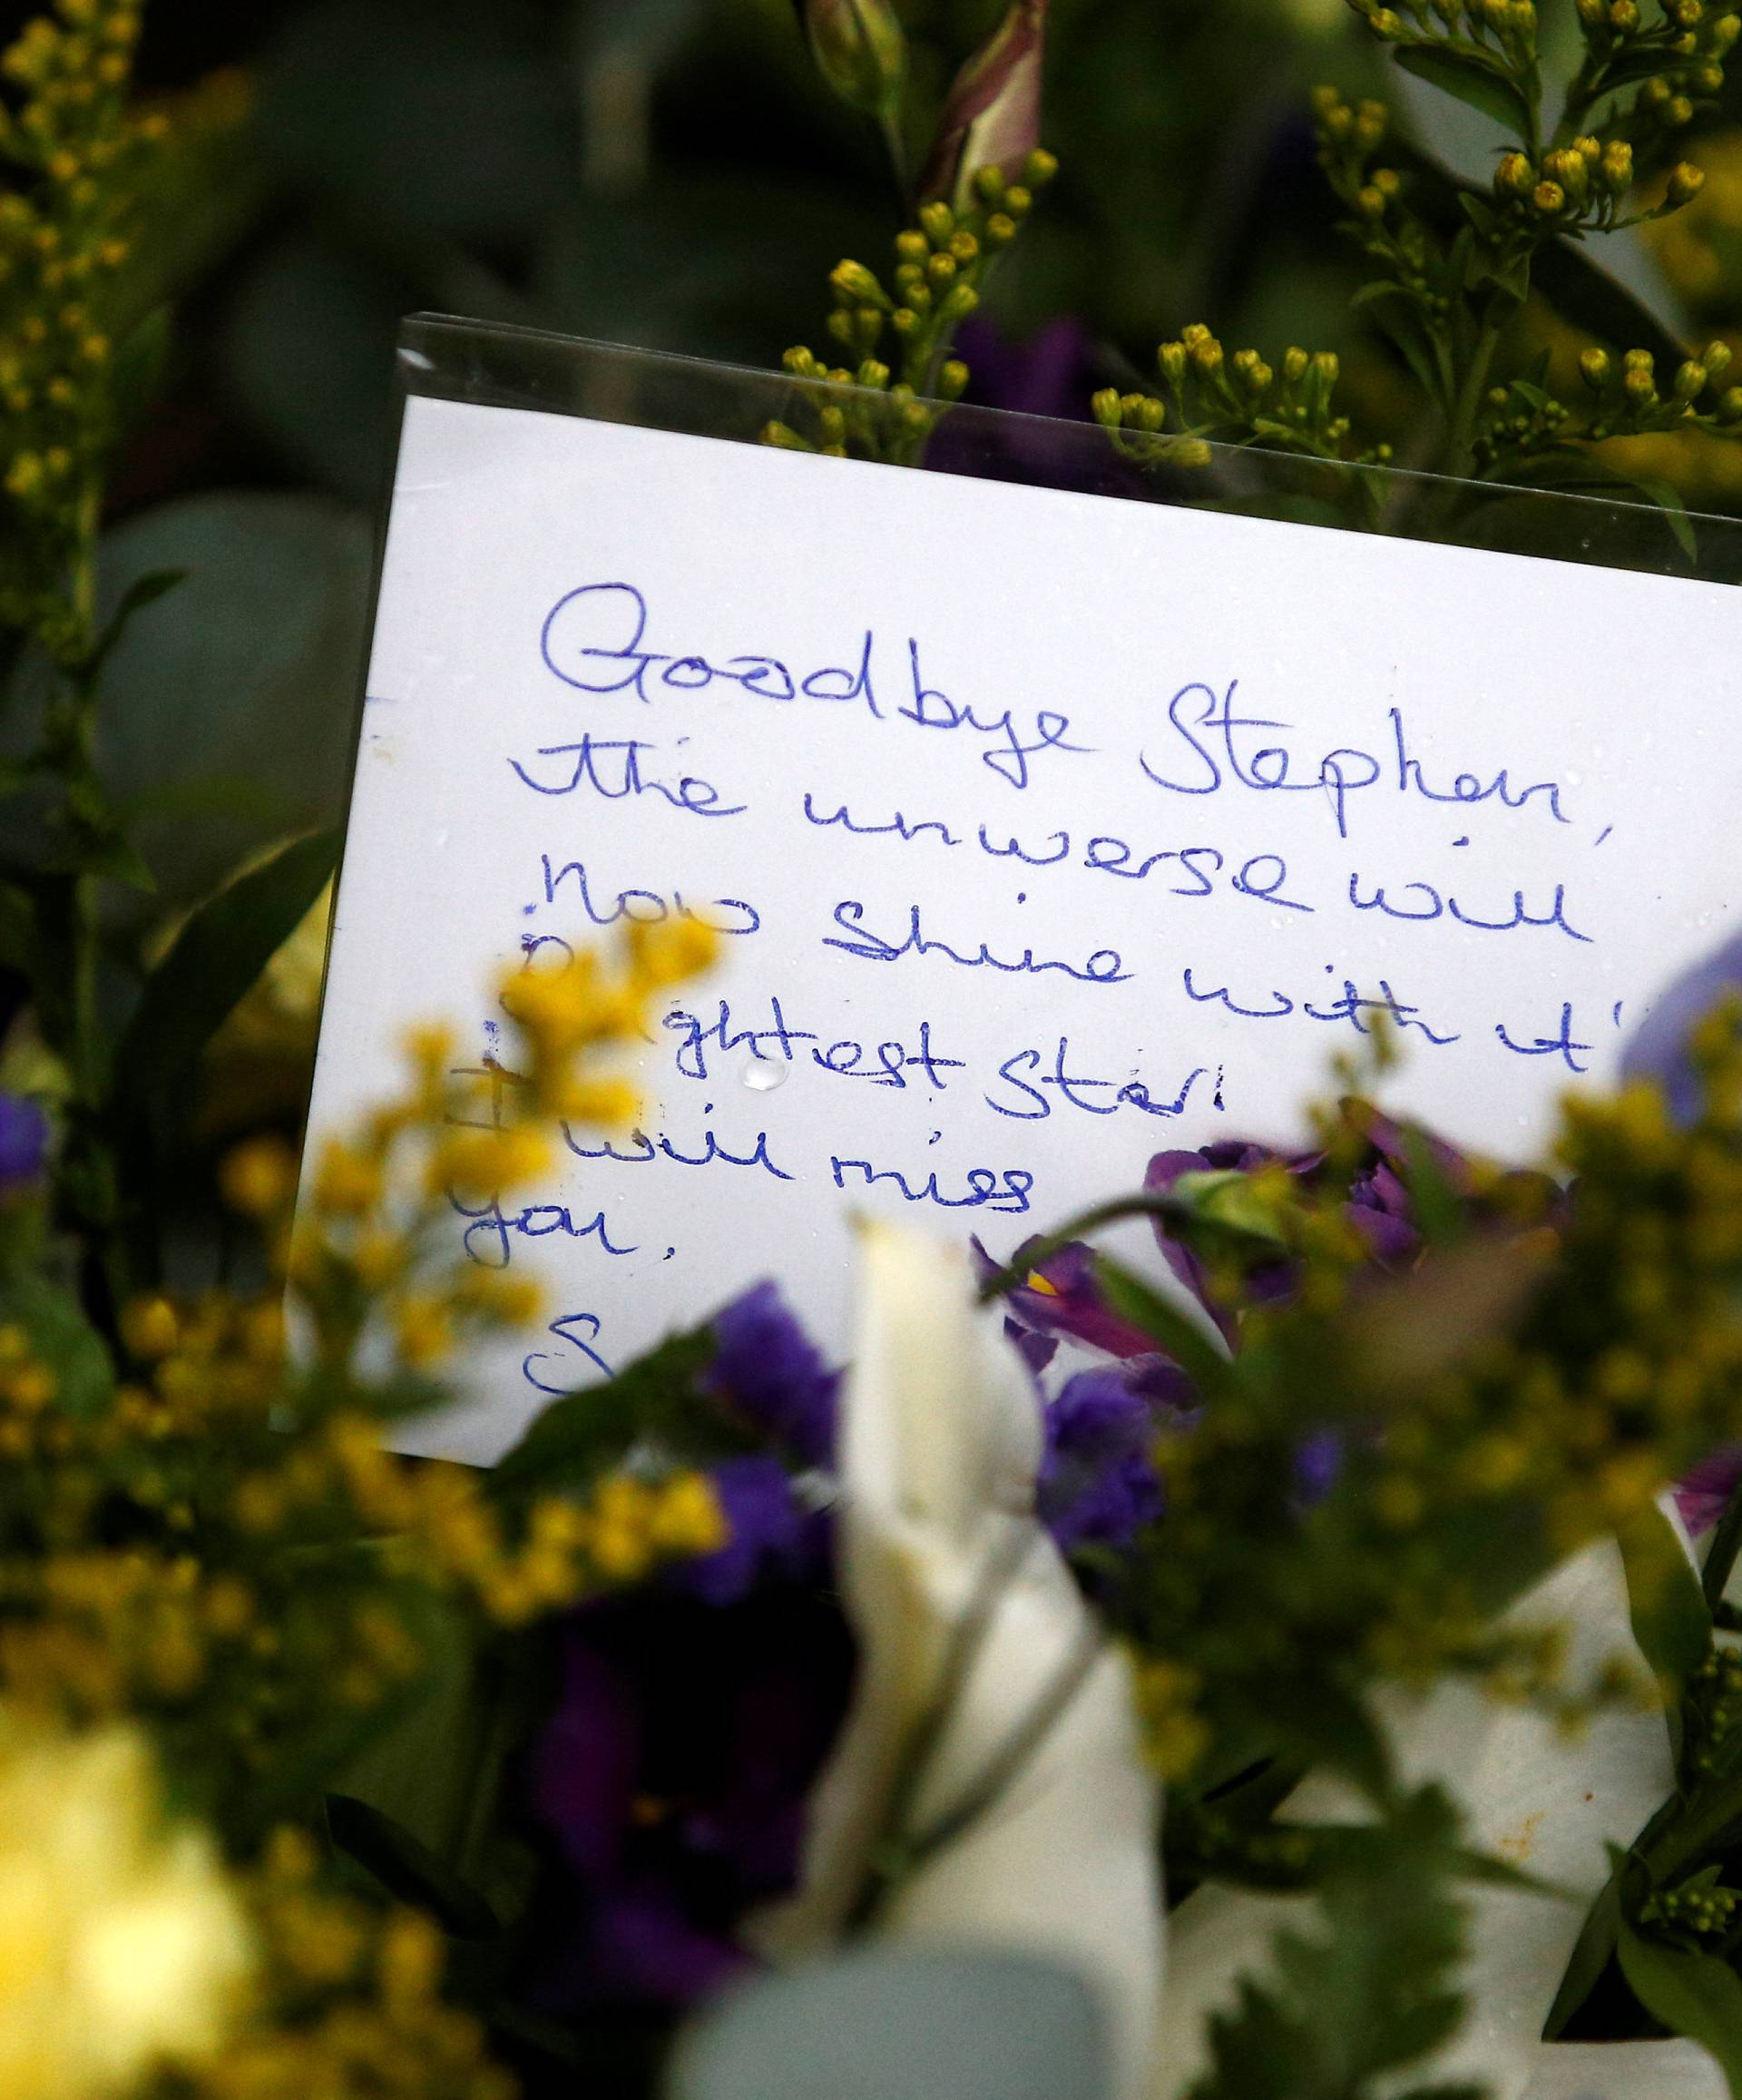 A floral tribute left outside Great St Marys Church, where the funeral of theoretical physicist Prof Stephen Hawking is being held, in Cambridge